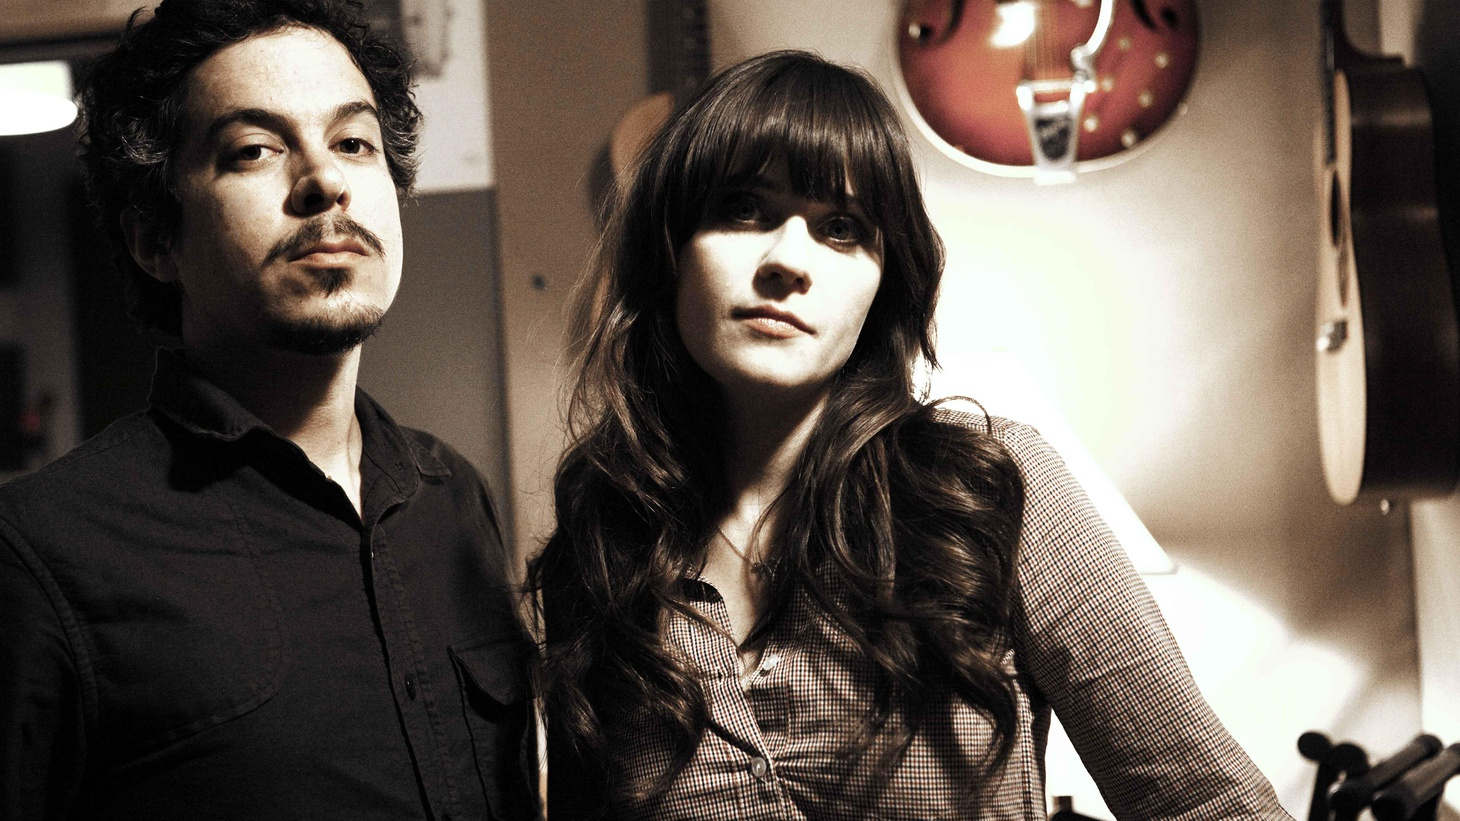 She & Him's Volume One was one of the most surprising records of 2008. The unlikely pairing of actress Zooey Deschanel and multi-instrumentalist M. Ward turned out to be a perfect collaboration for the creation of nostalgic sixties-inspired pop tinged with folk & country touches.